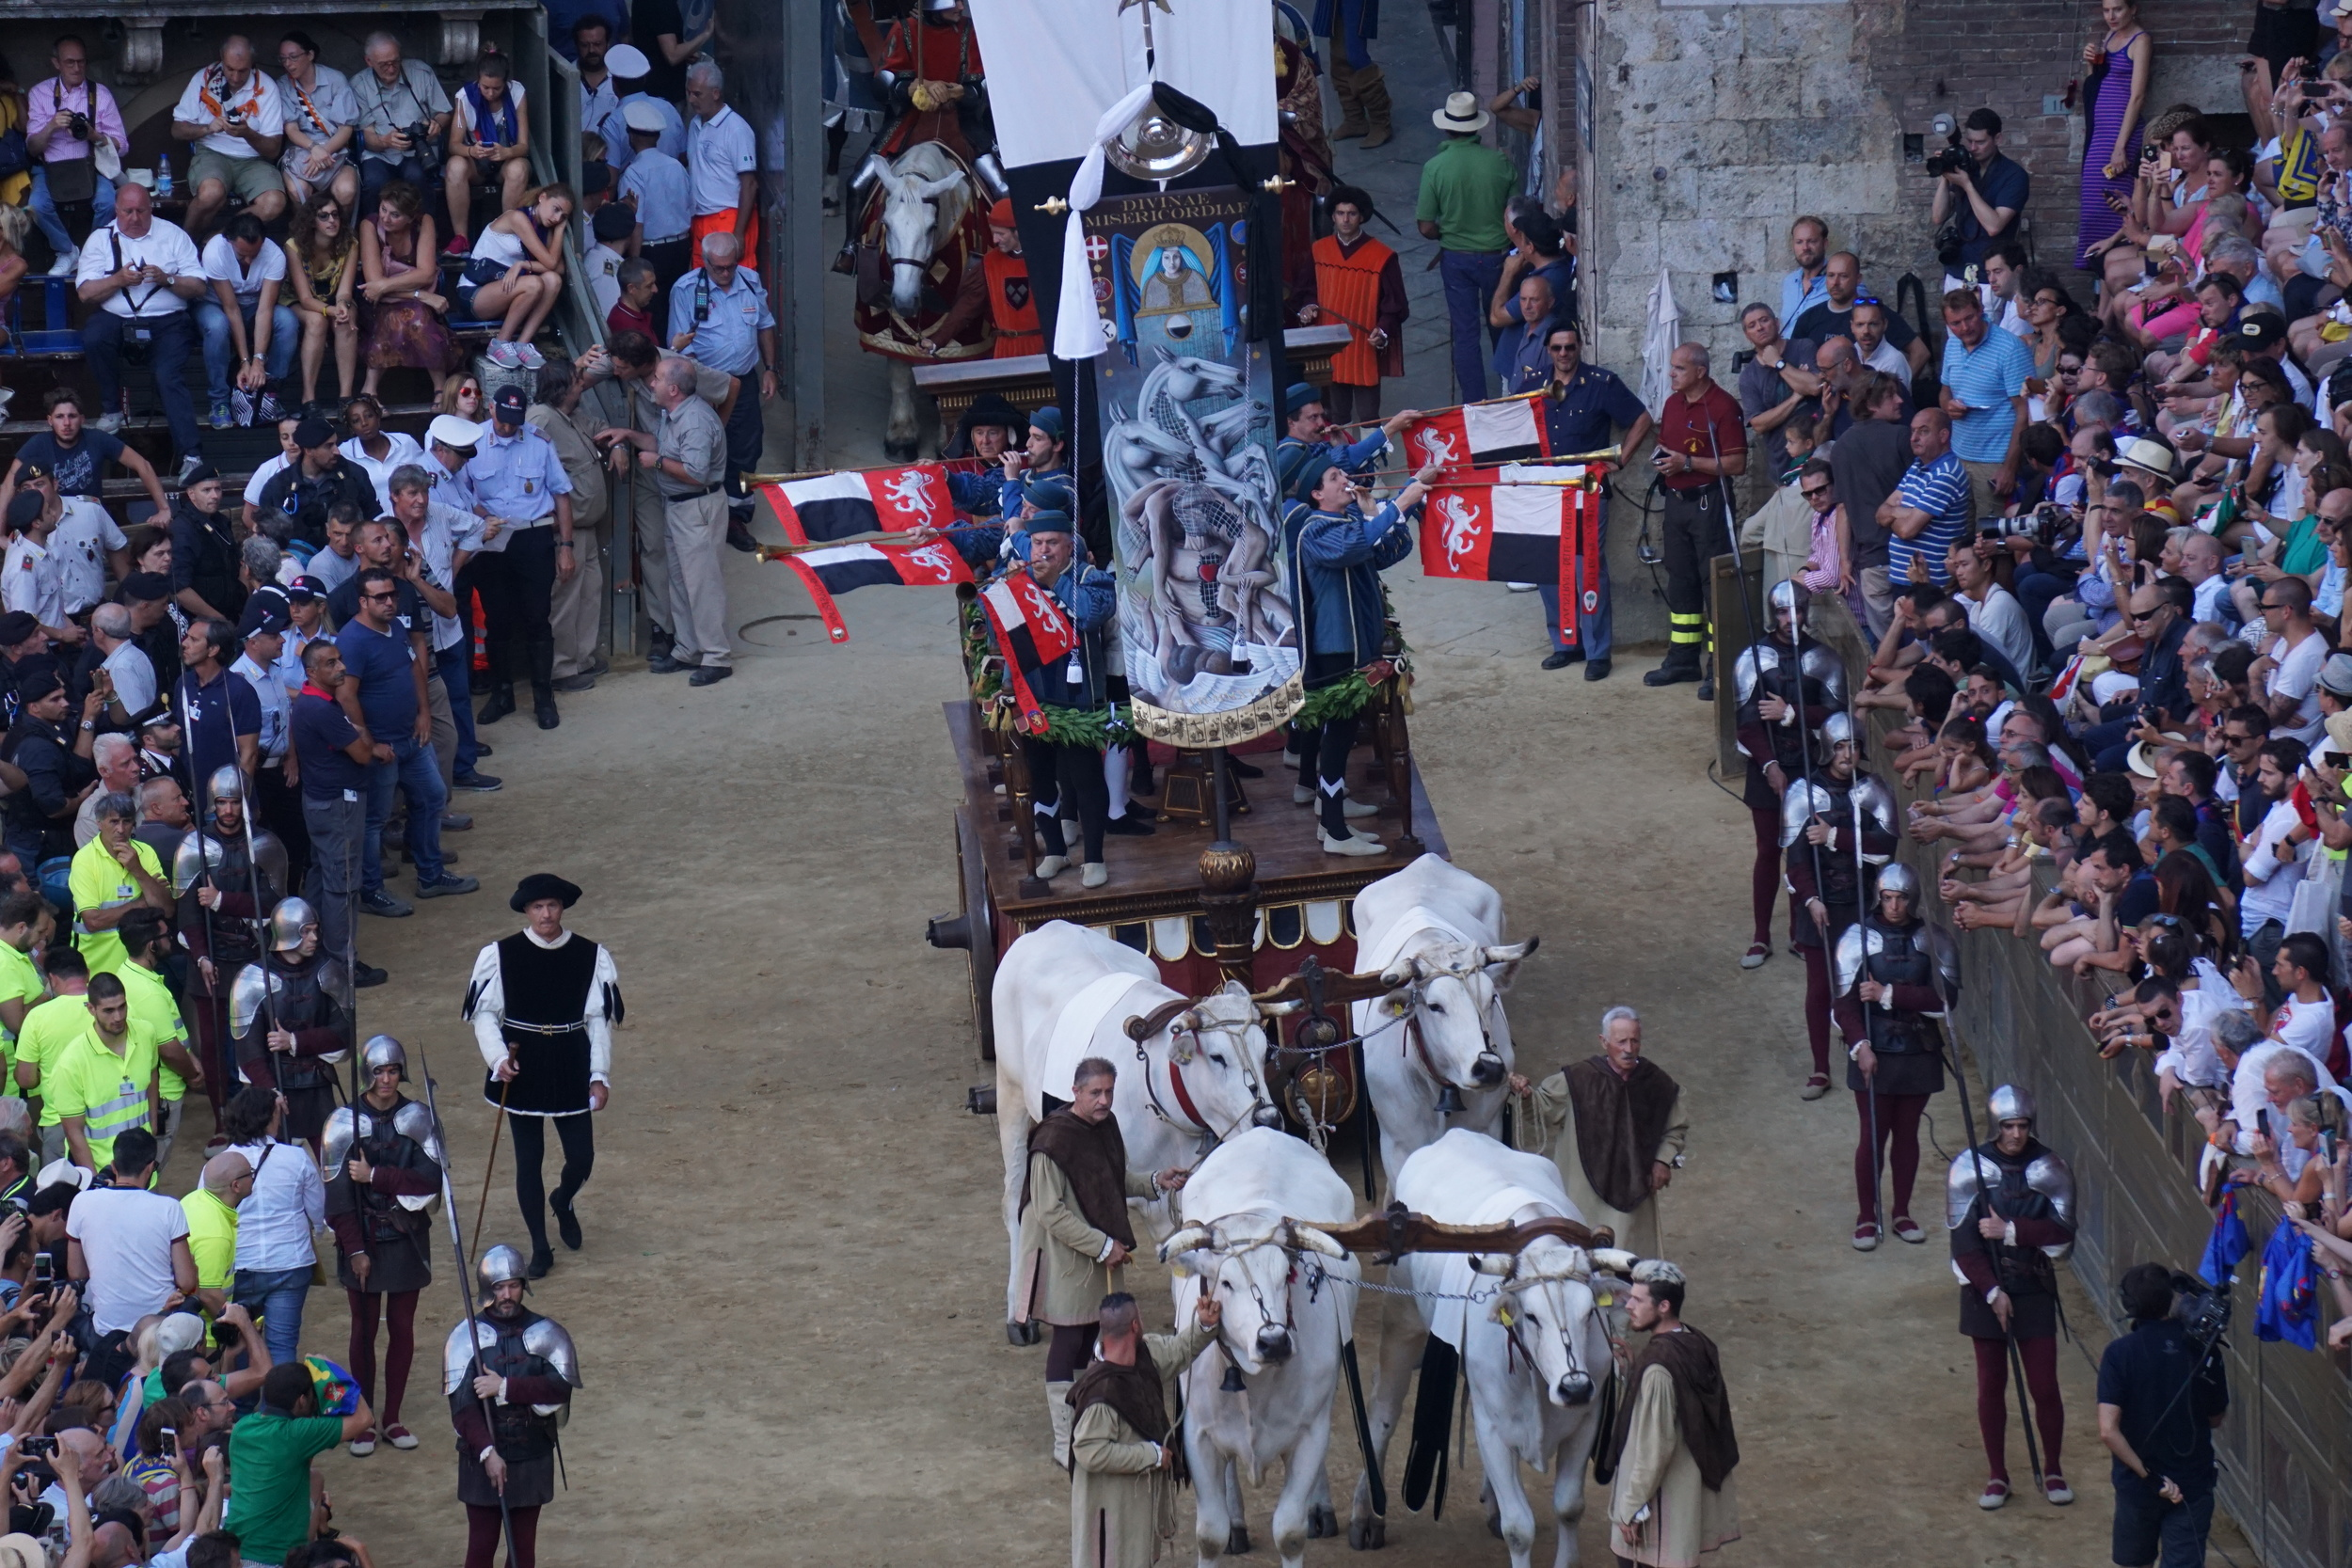 The Palio entering the Campo